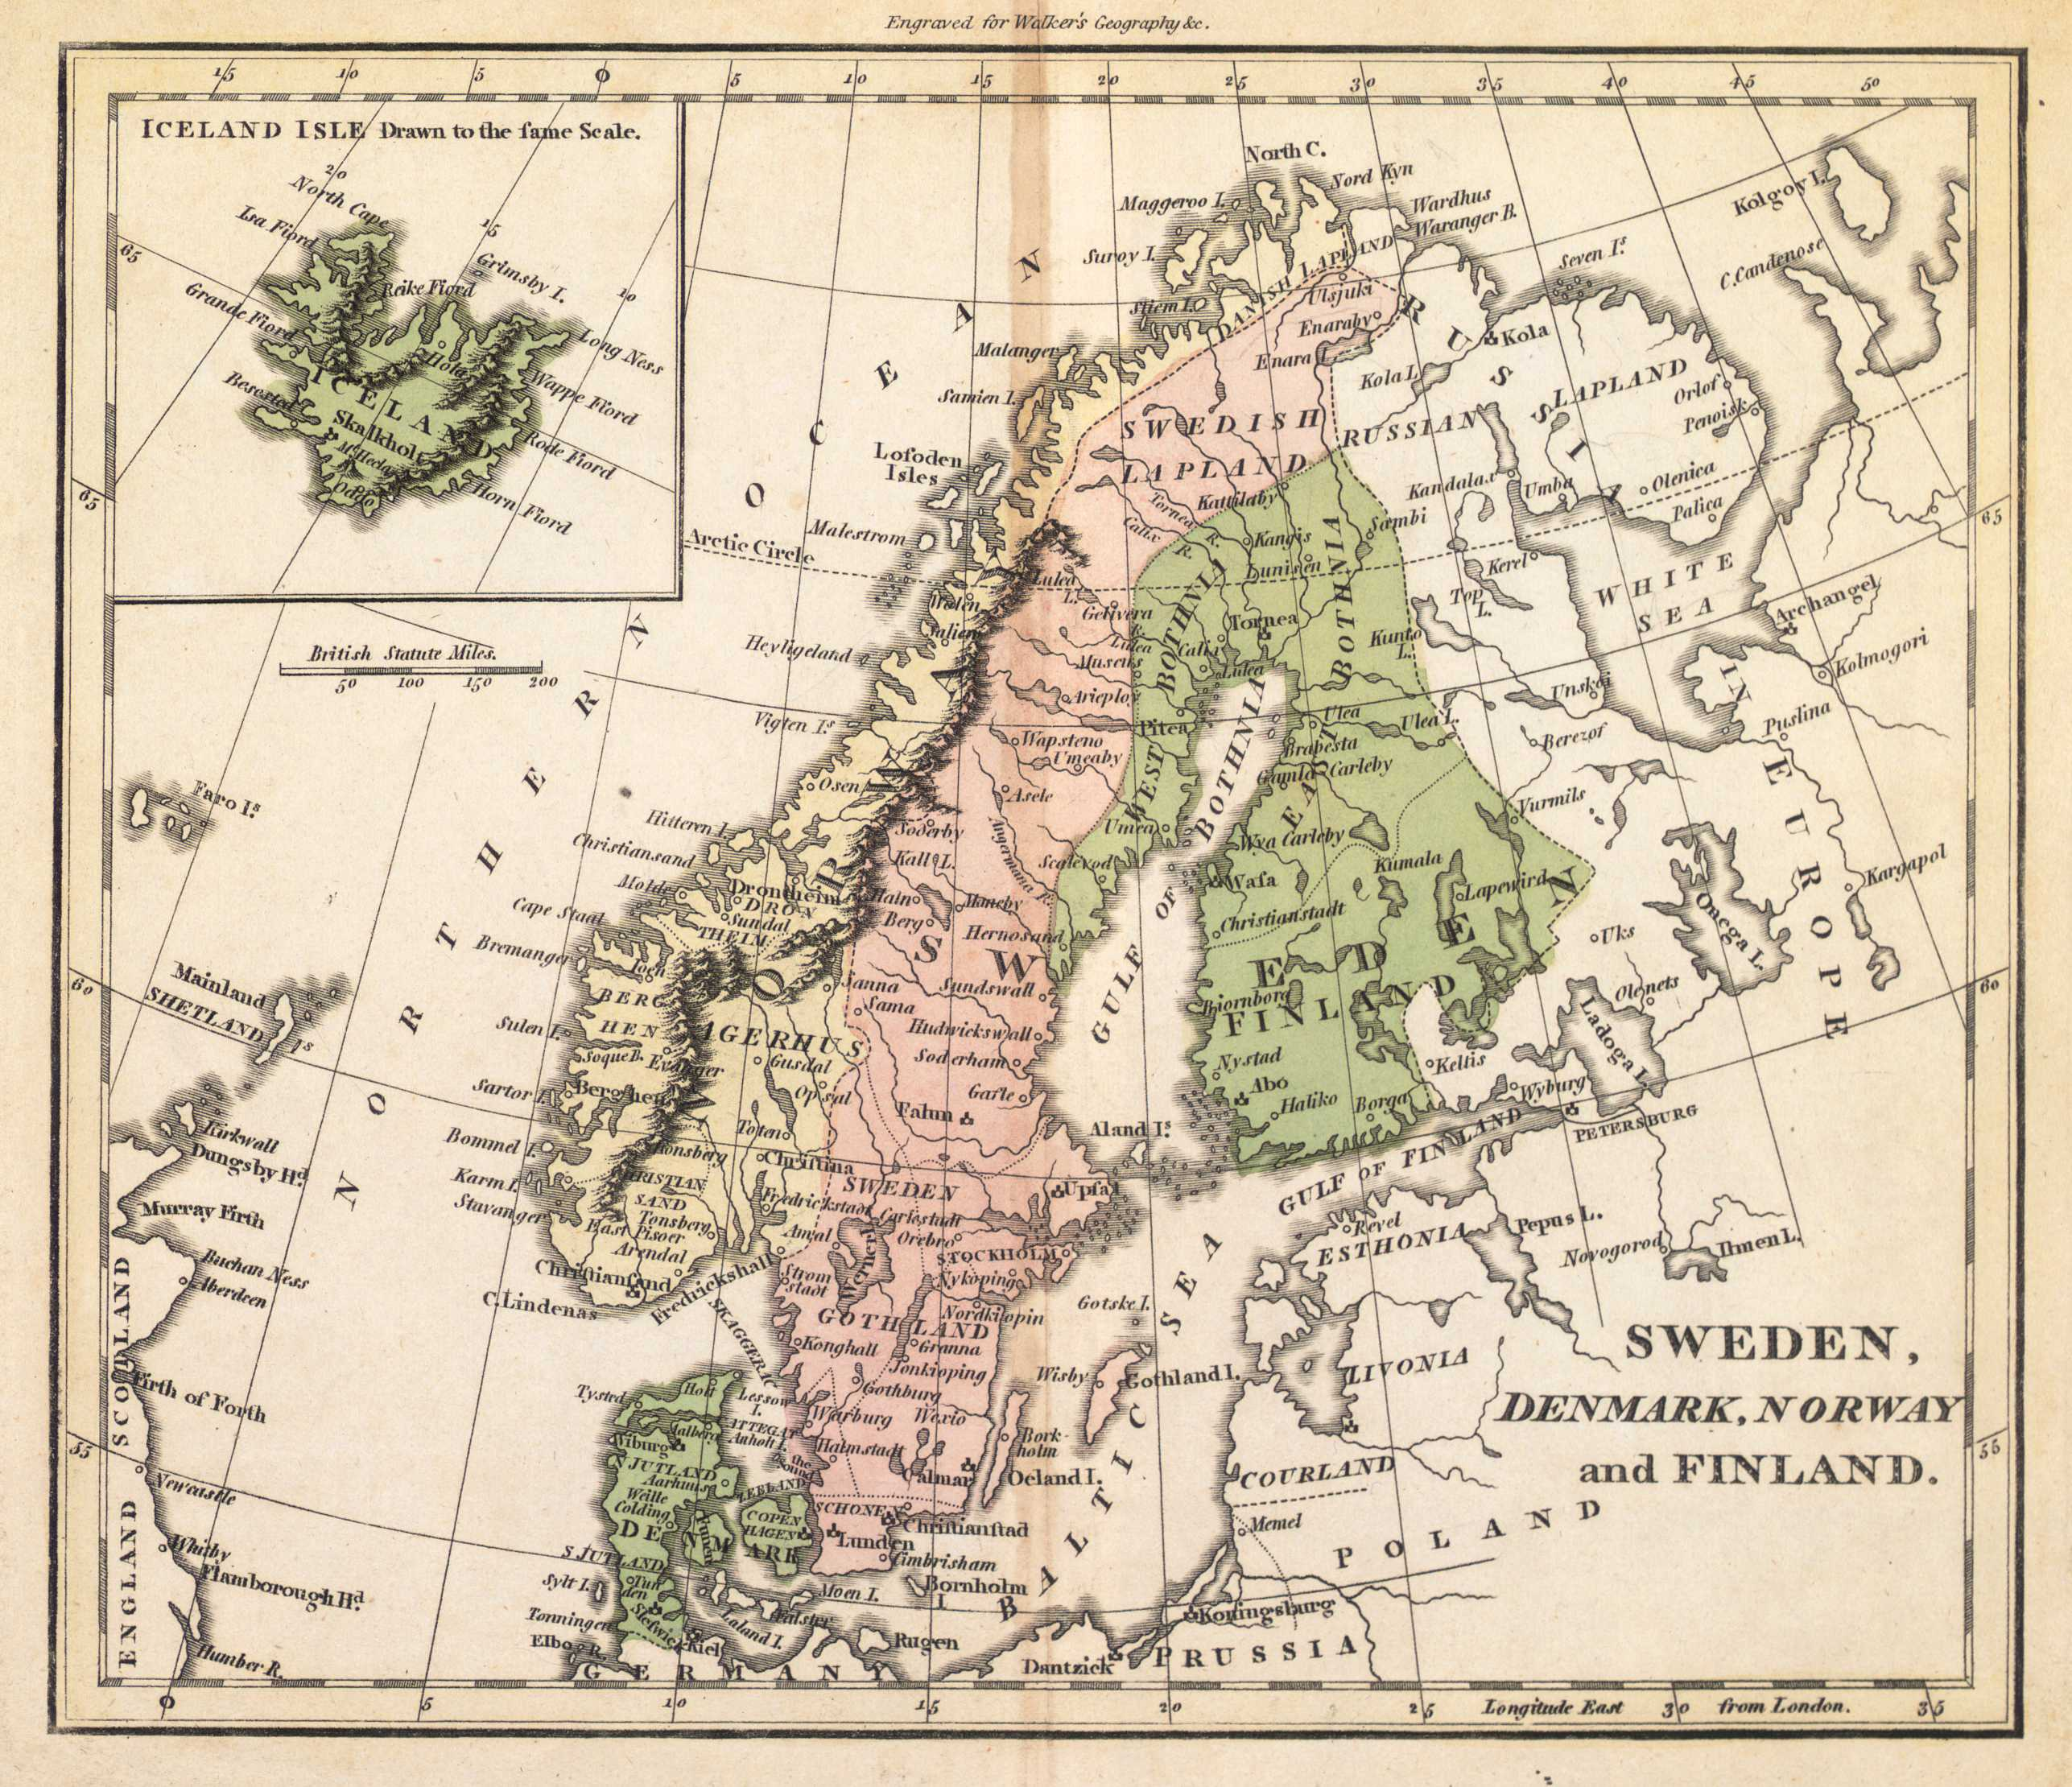 Sweden Denmark Norway And Finland Íslandskortis - Sweden map 1800